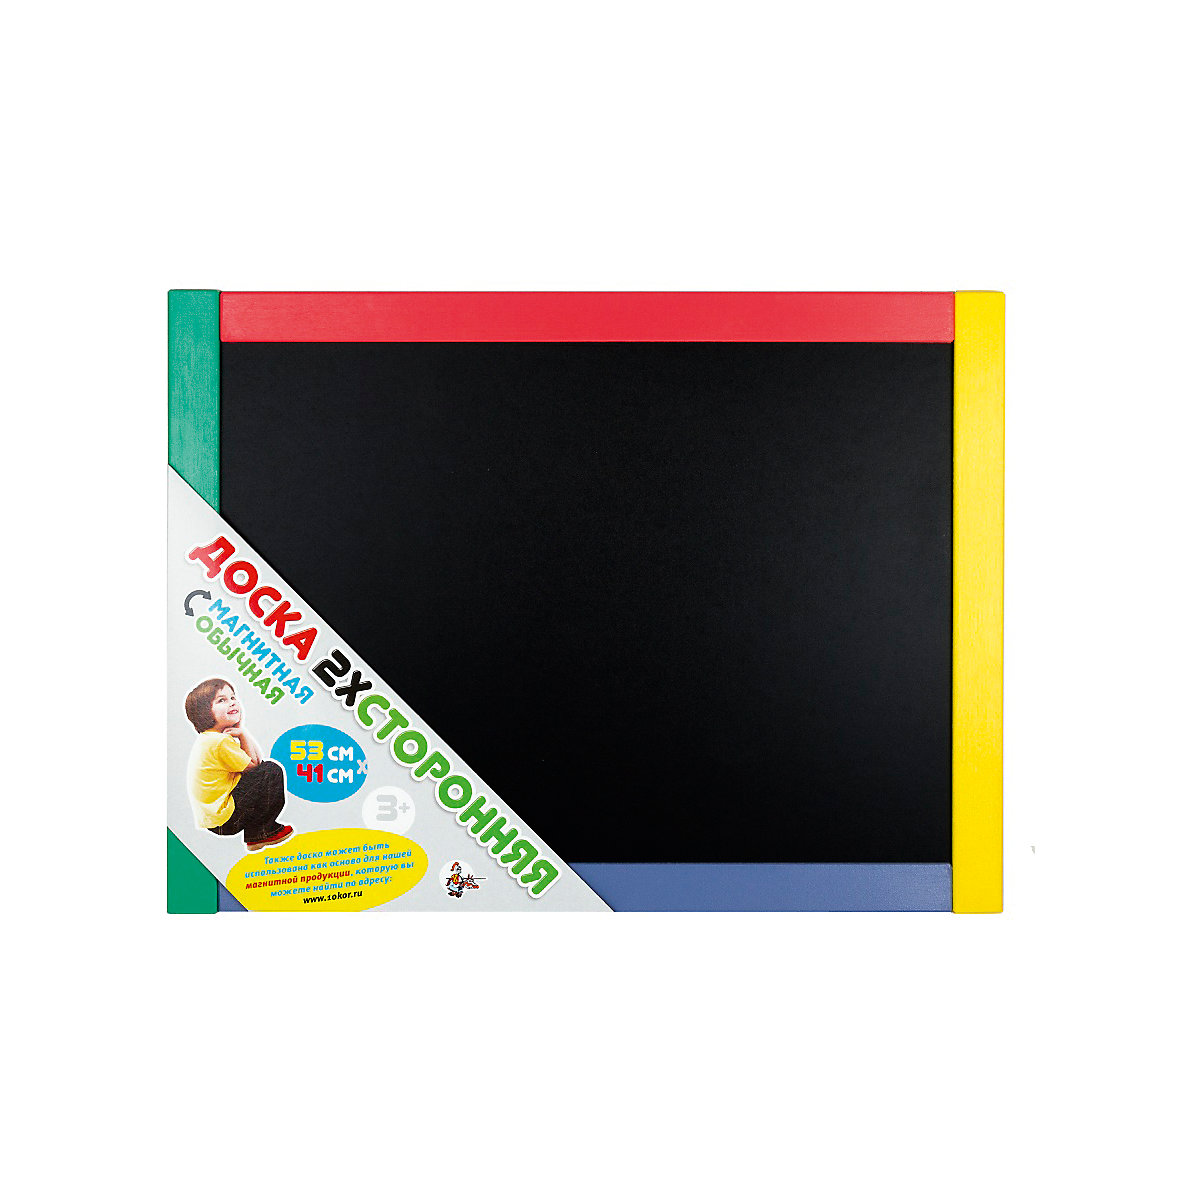 Blackboard Desyatoe korolevstvo 5471709 magnetic marker board  for records presentation boards drawing for girls and boys accessories for inverter driver board a5e00297621 0 teardown